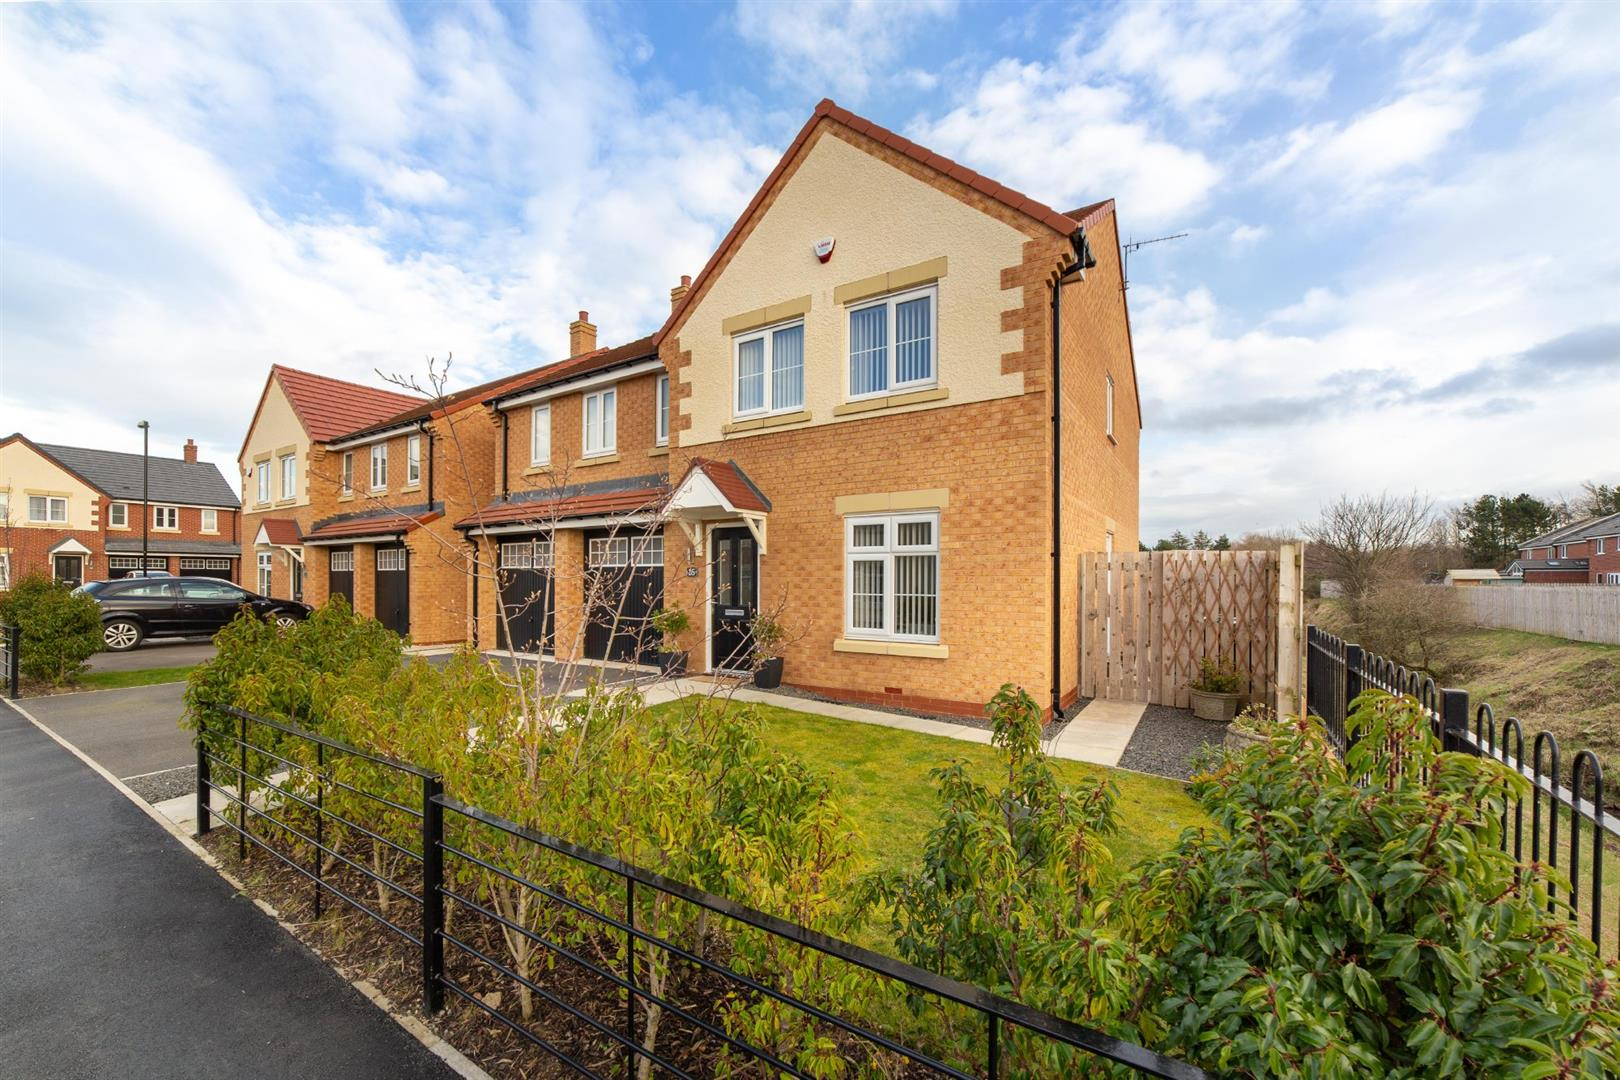 5 bed detached house for sale in Whitley Bay, NE25 9GL  - Property Image 1